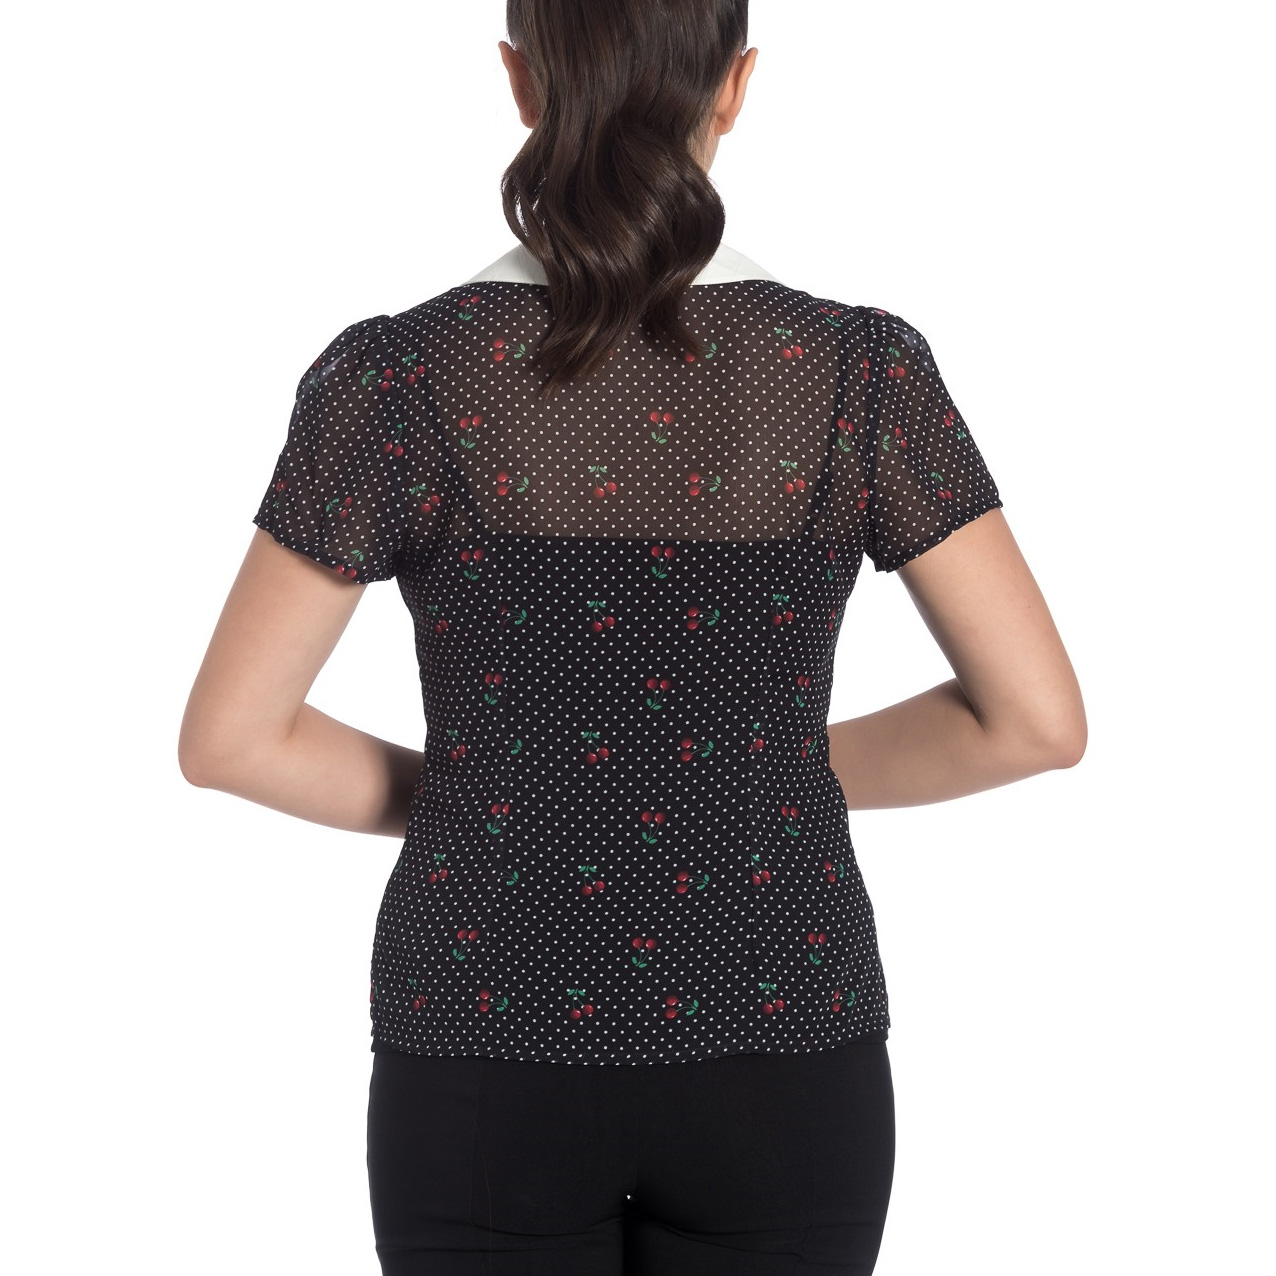 Hell-Bunny-Shirt-Top-Black-50s-Polka-Dot-SOPHIE-Blouse-Cherries-Cherry-All-Sizes thumbnail 9